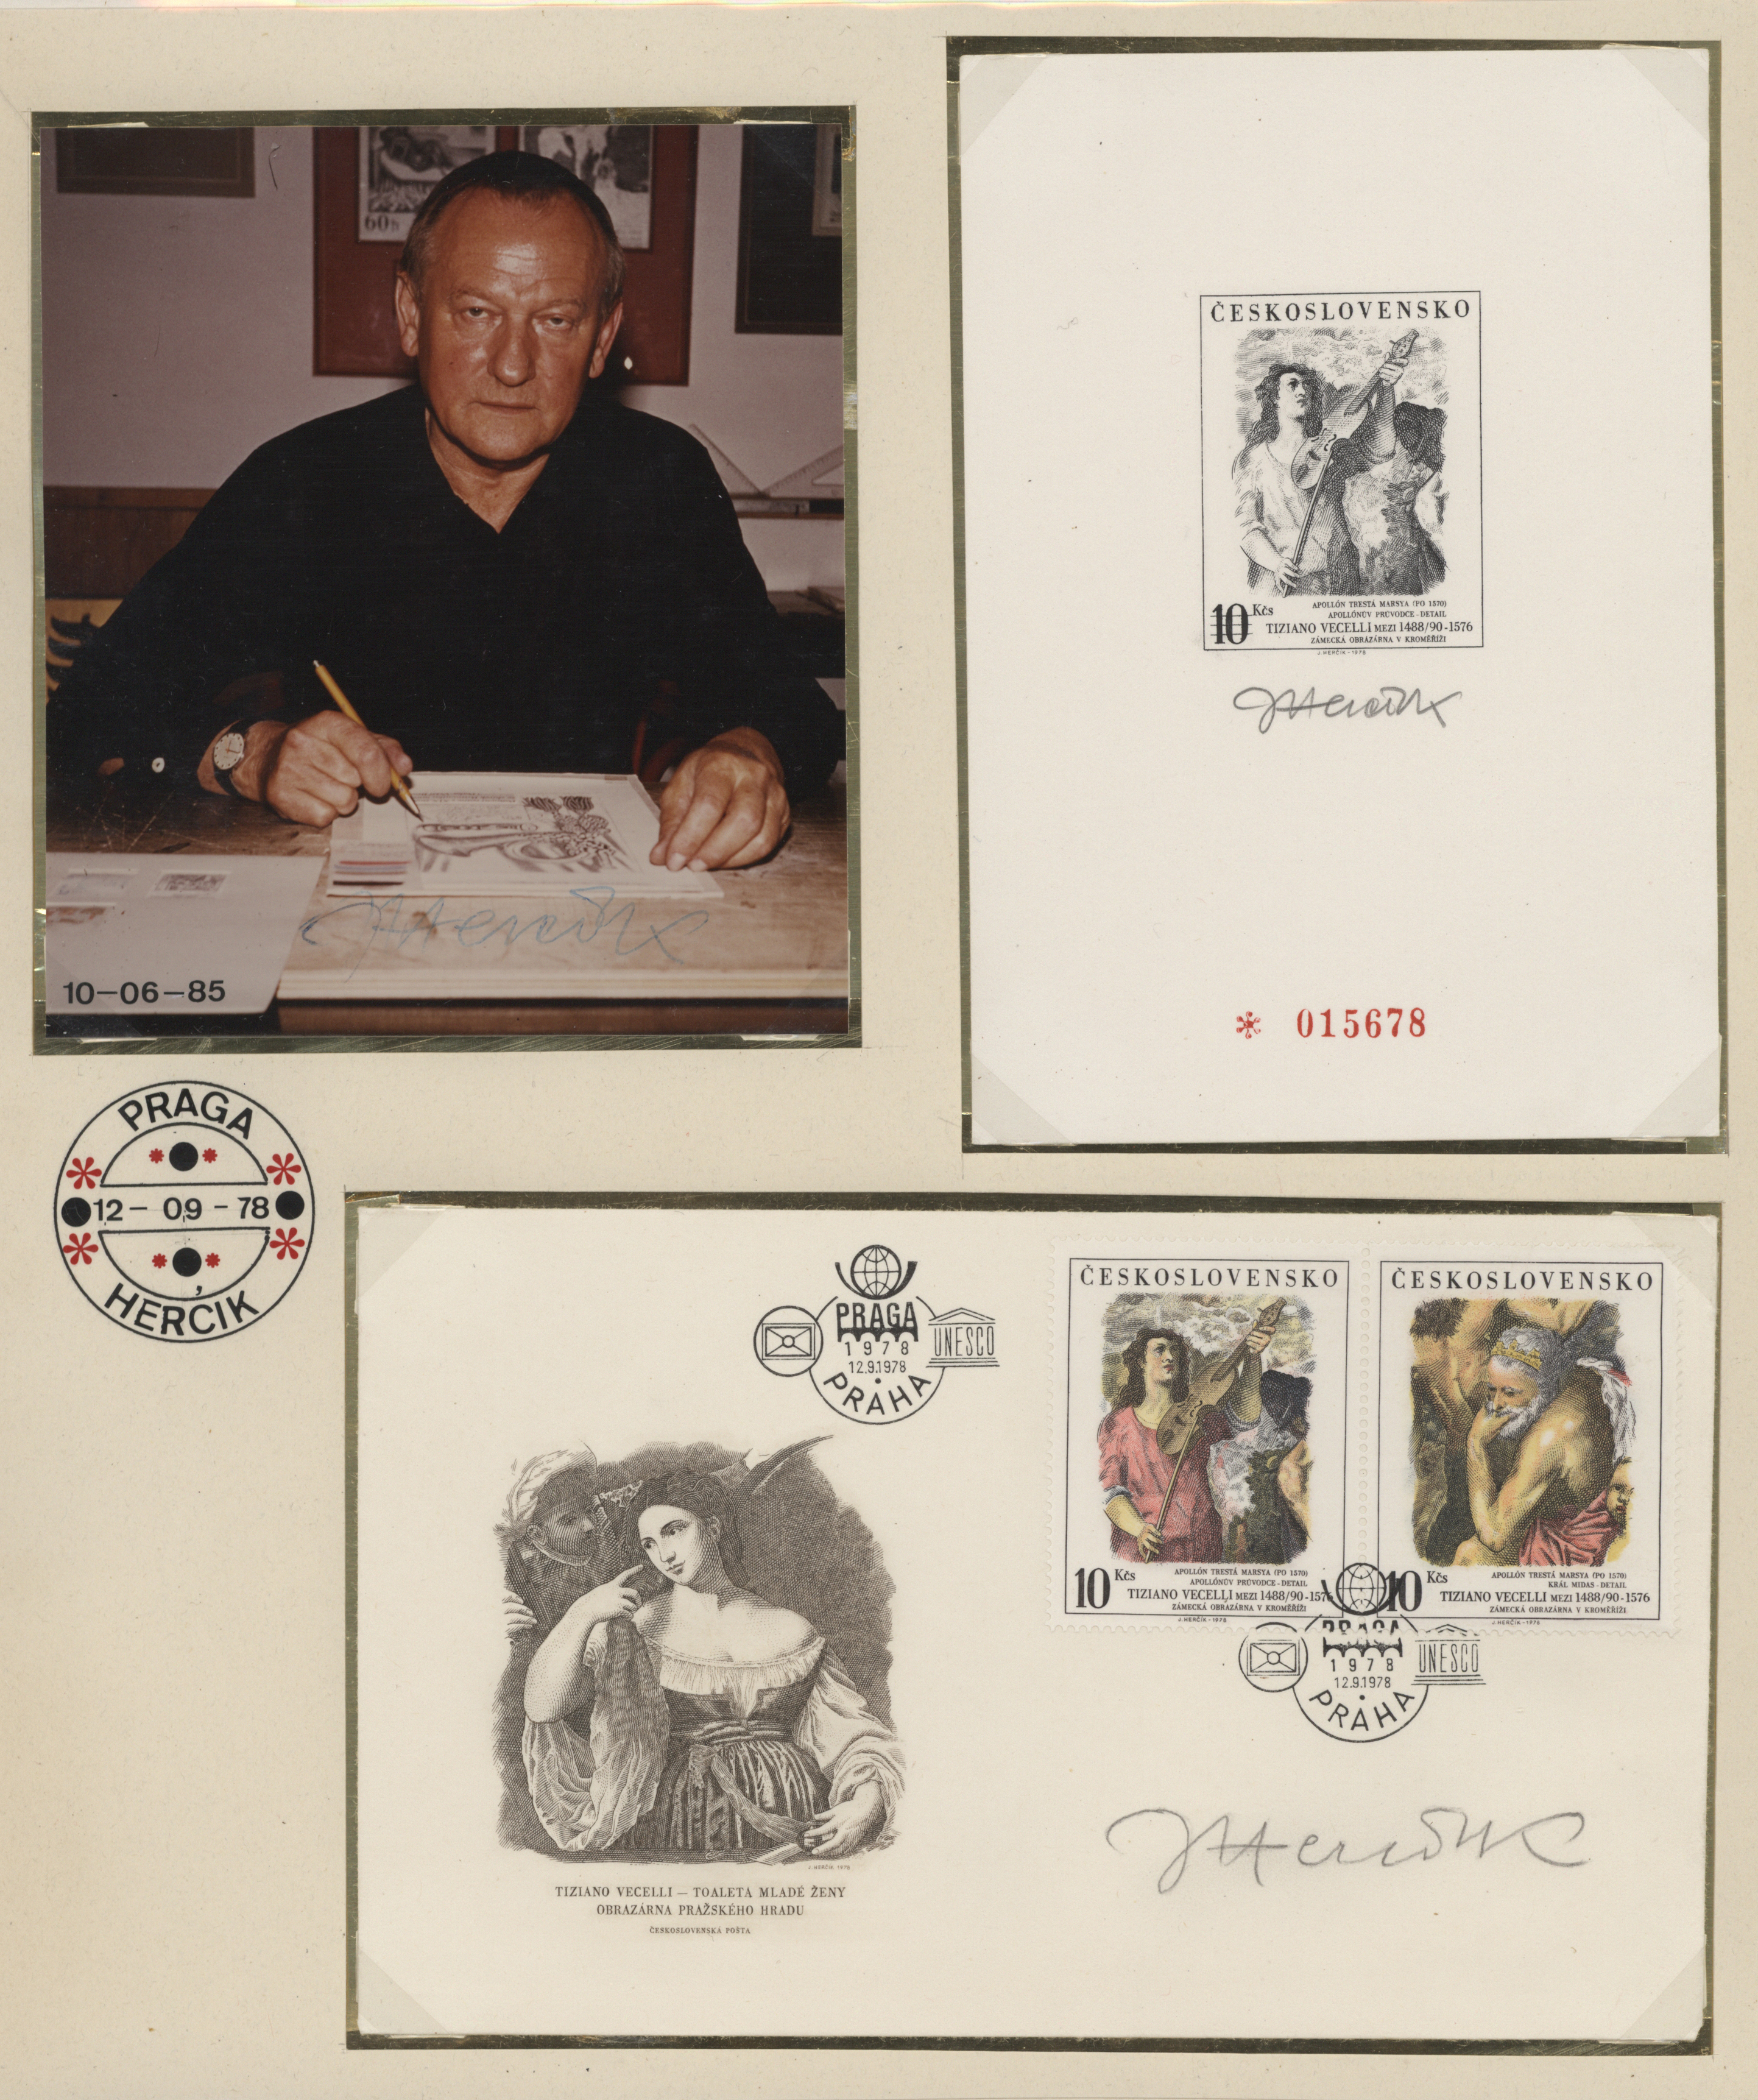 Lot 34923 - Tschechoslowakei - Besonderheiten  -  Auktionshaus Christoph Gärtner GmbH & Co. KG Collections Germany,  Collections Supplement, Surprise boxes #39 Day 7